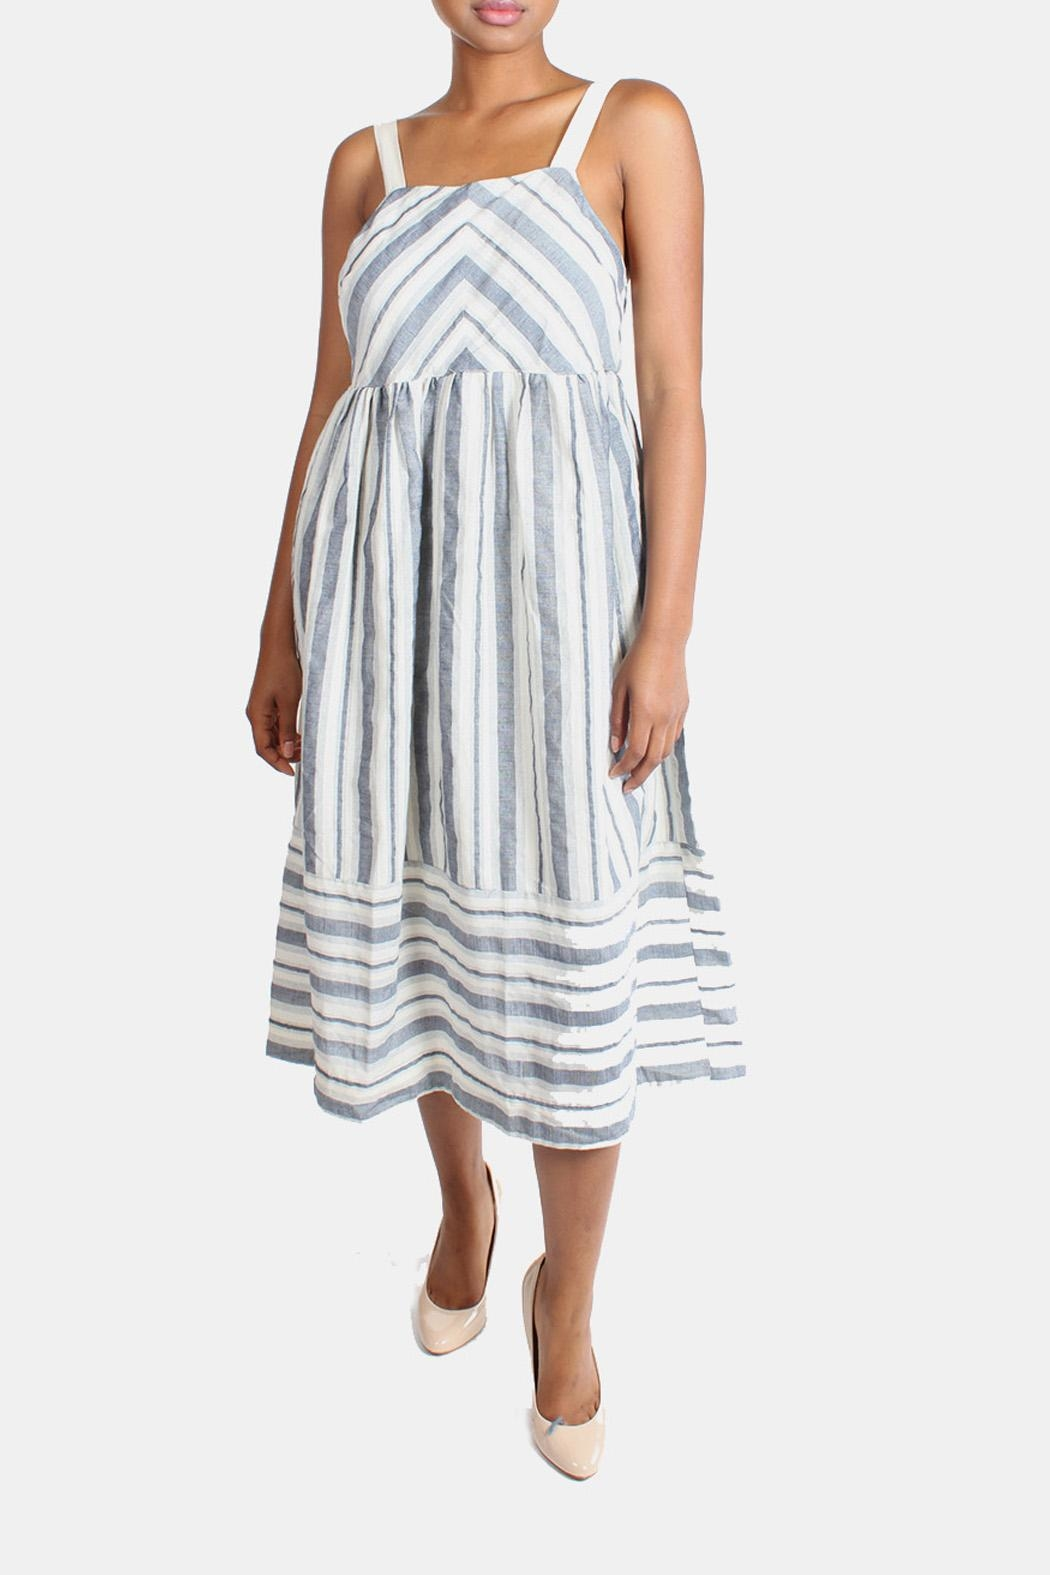 Ciel Shoreside Striped Dress - Main Image